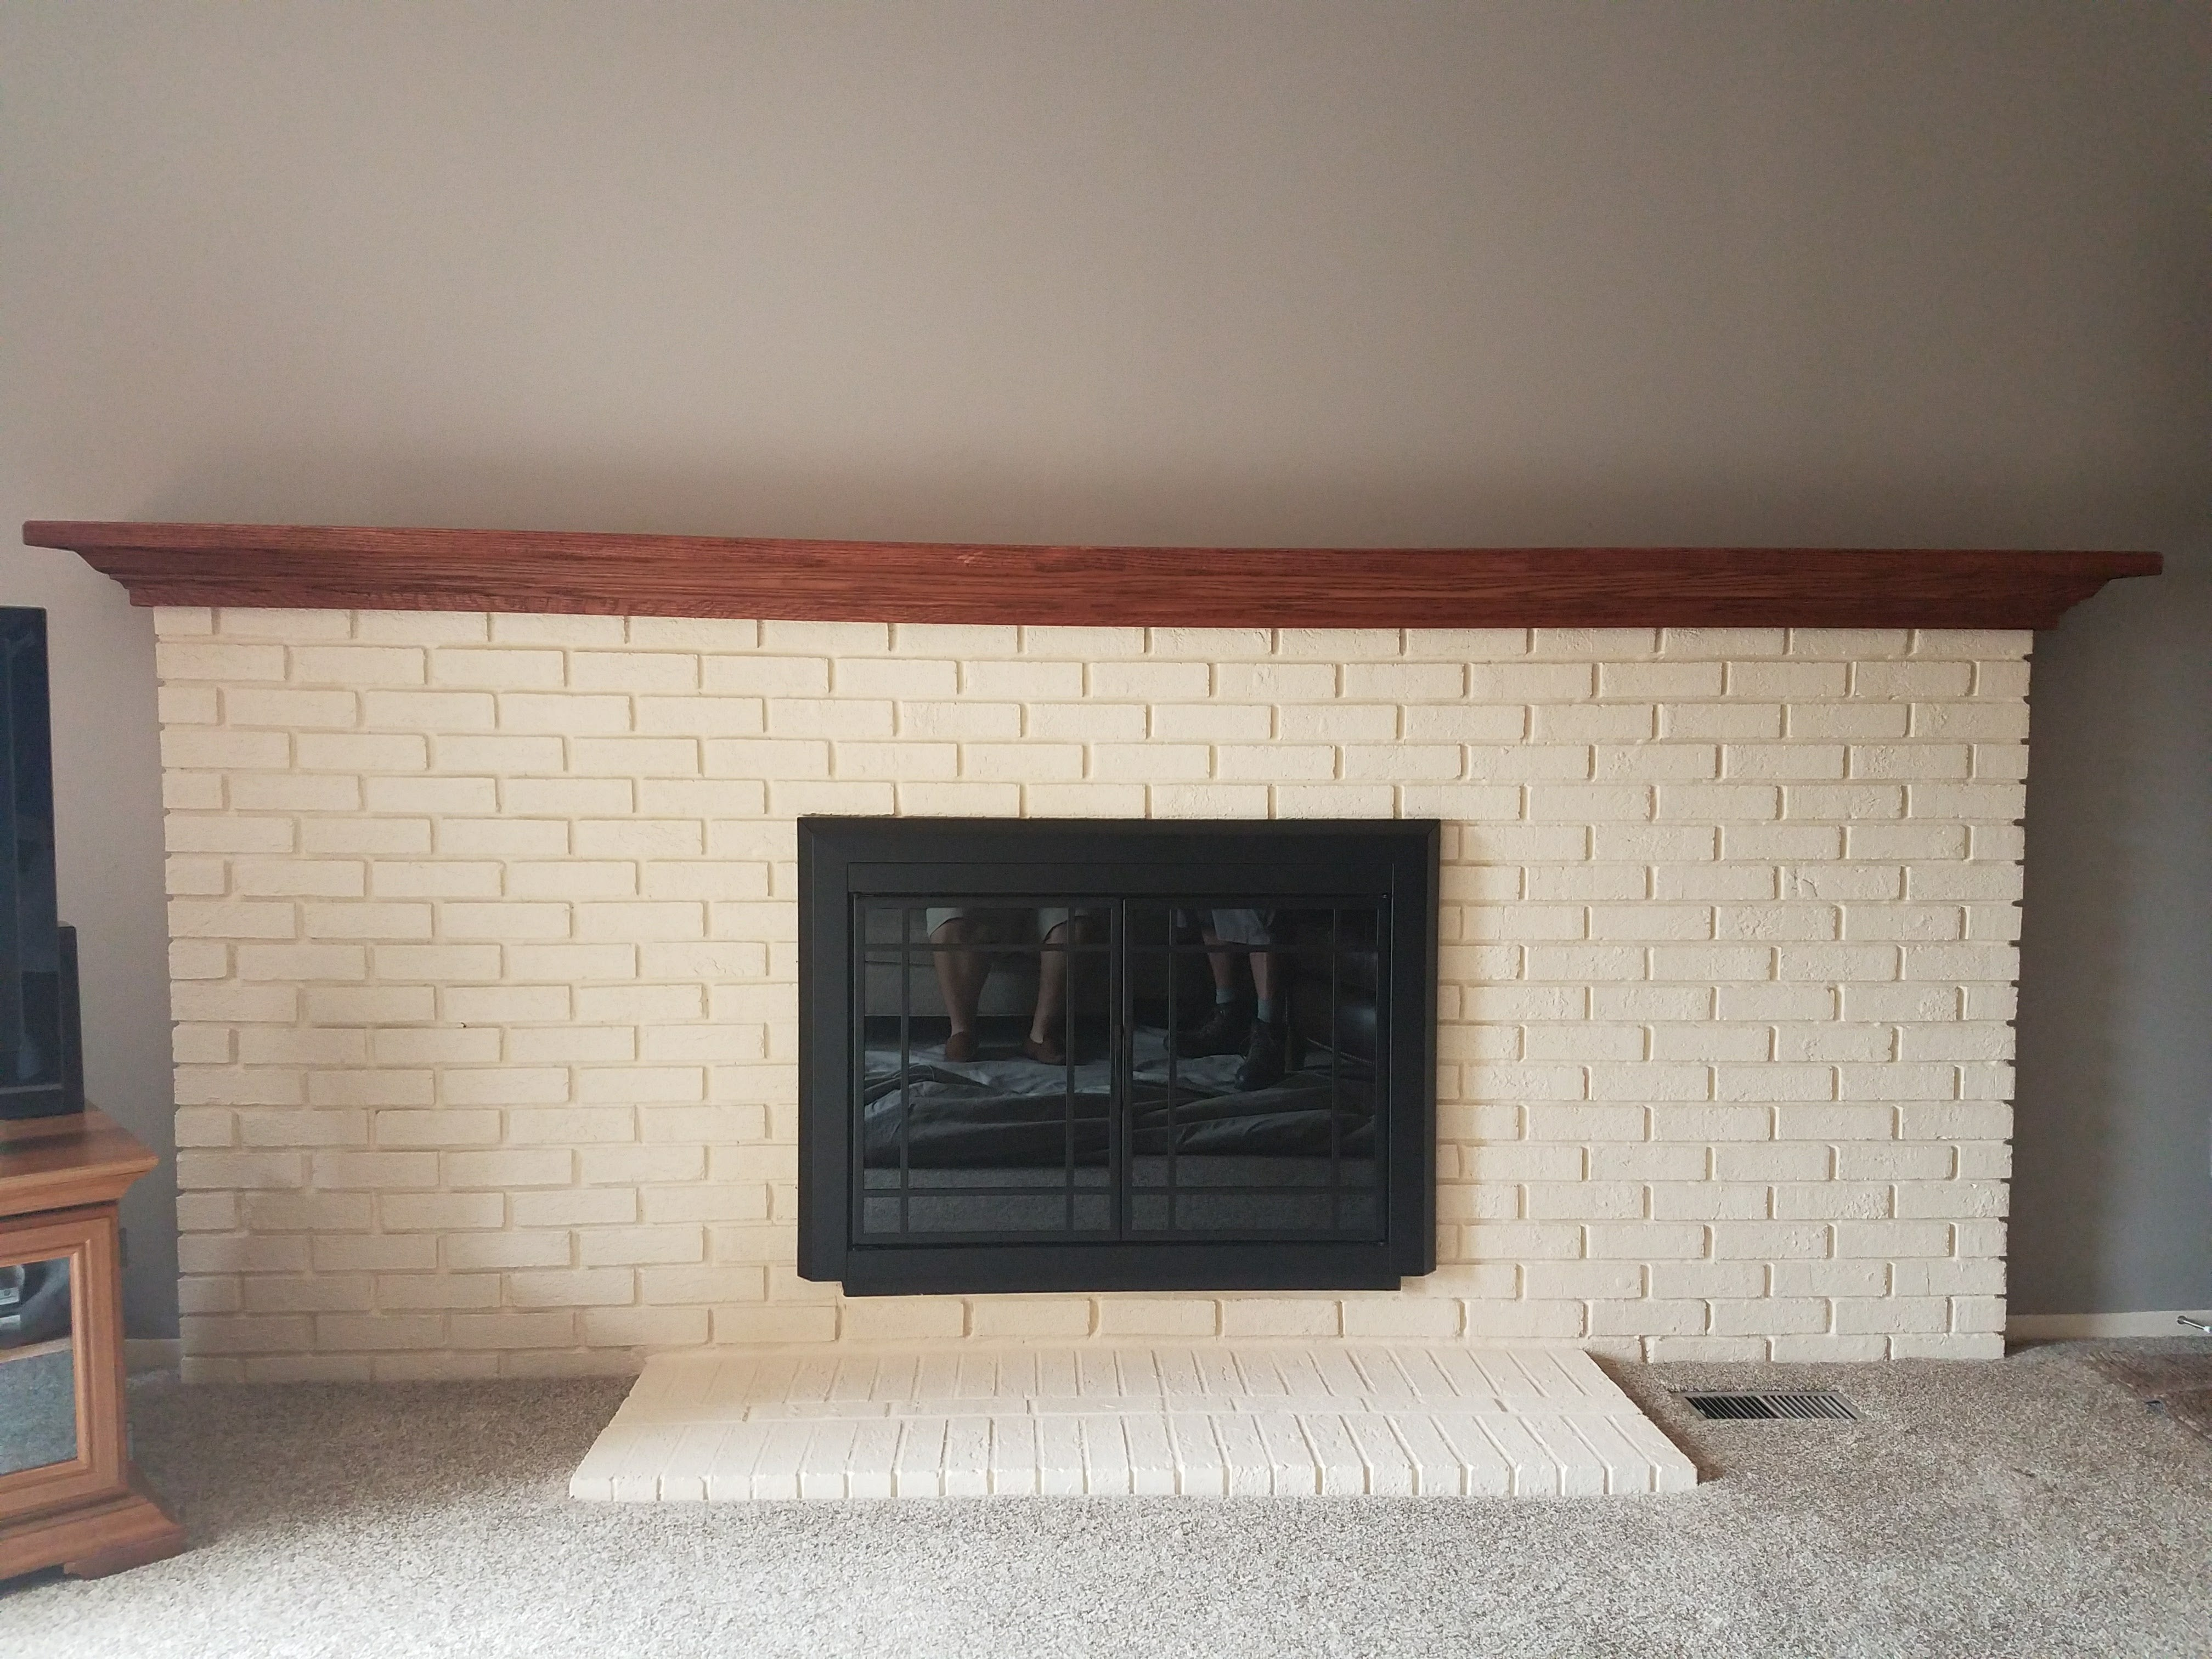 Fireplace FACELIFT 0 & Chimney Cricket Wisdom \u2013 Tagged \